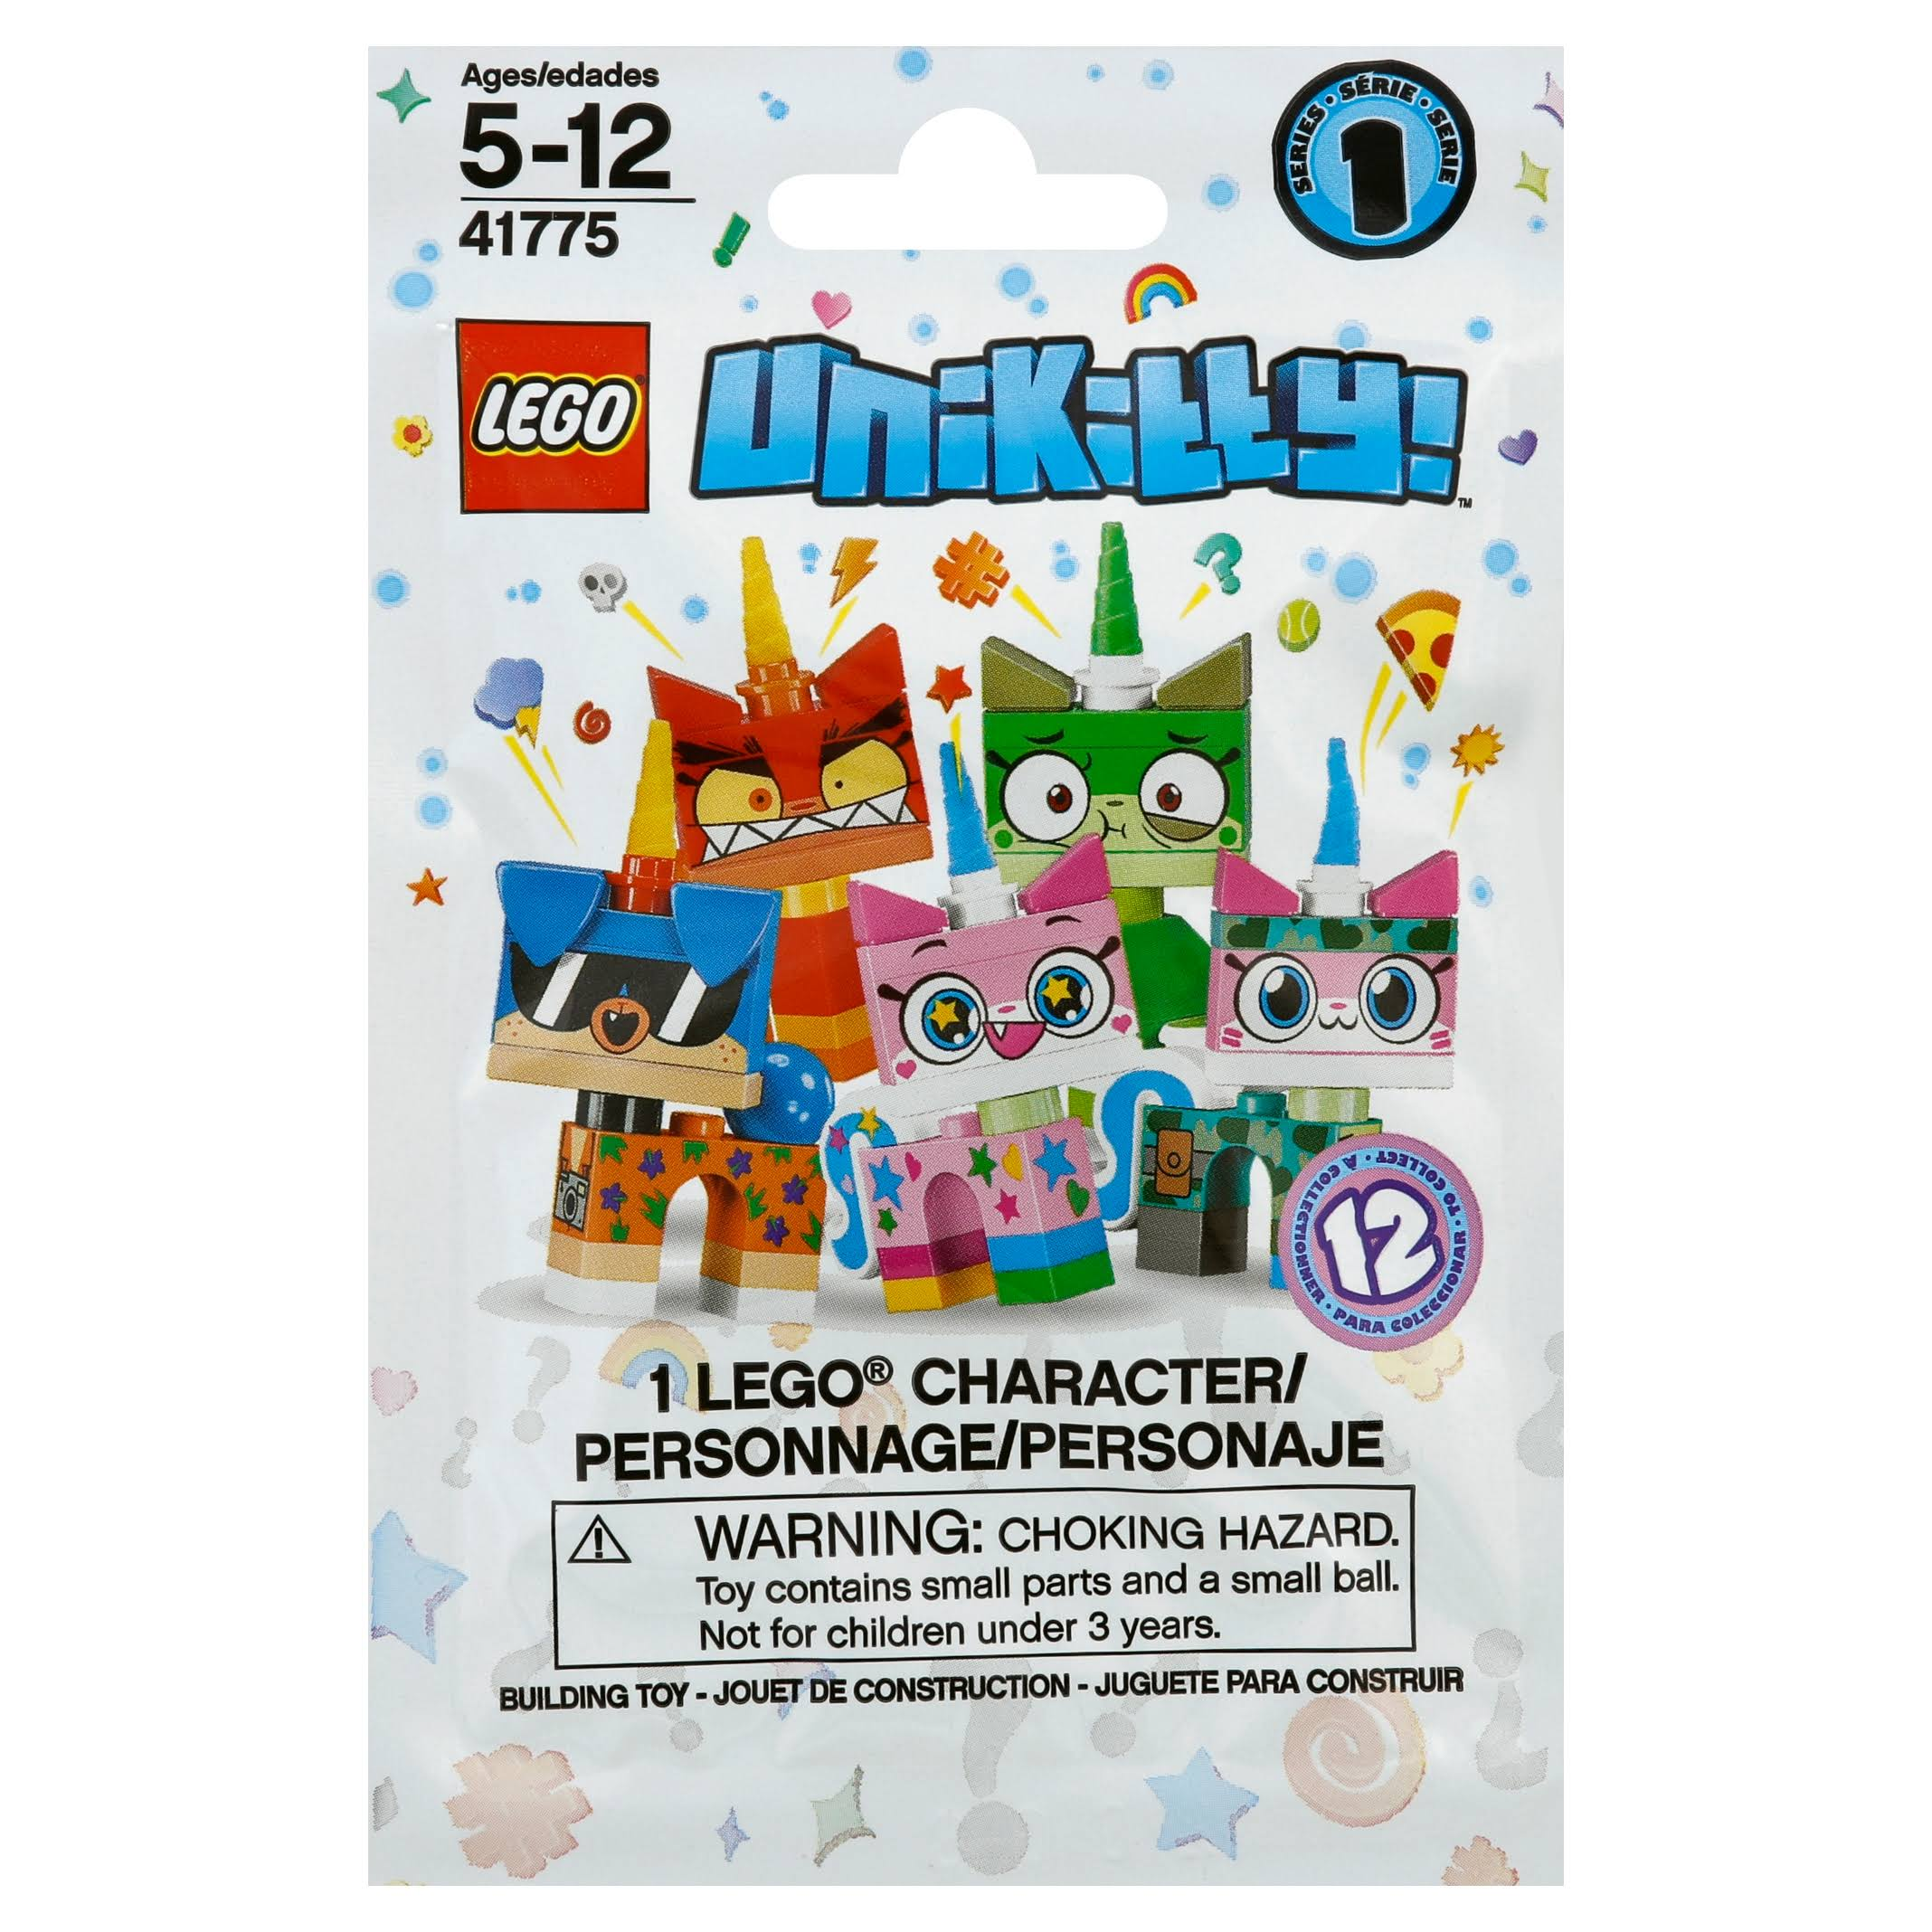 Lego Building Toy, Unikitty!, Series 1